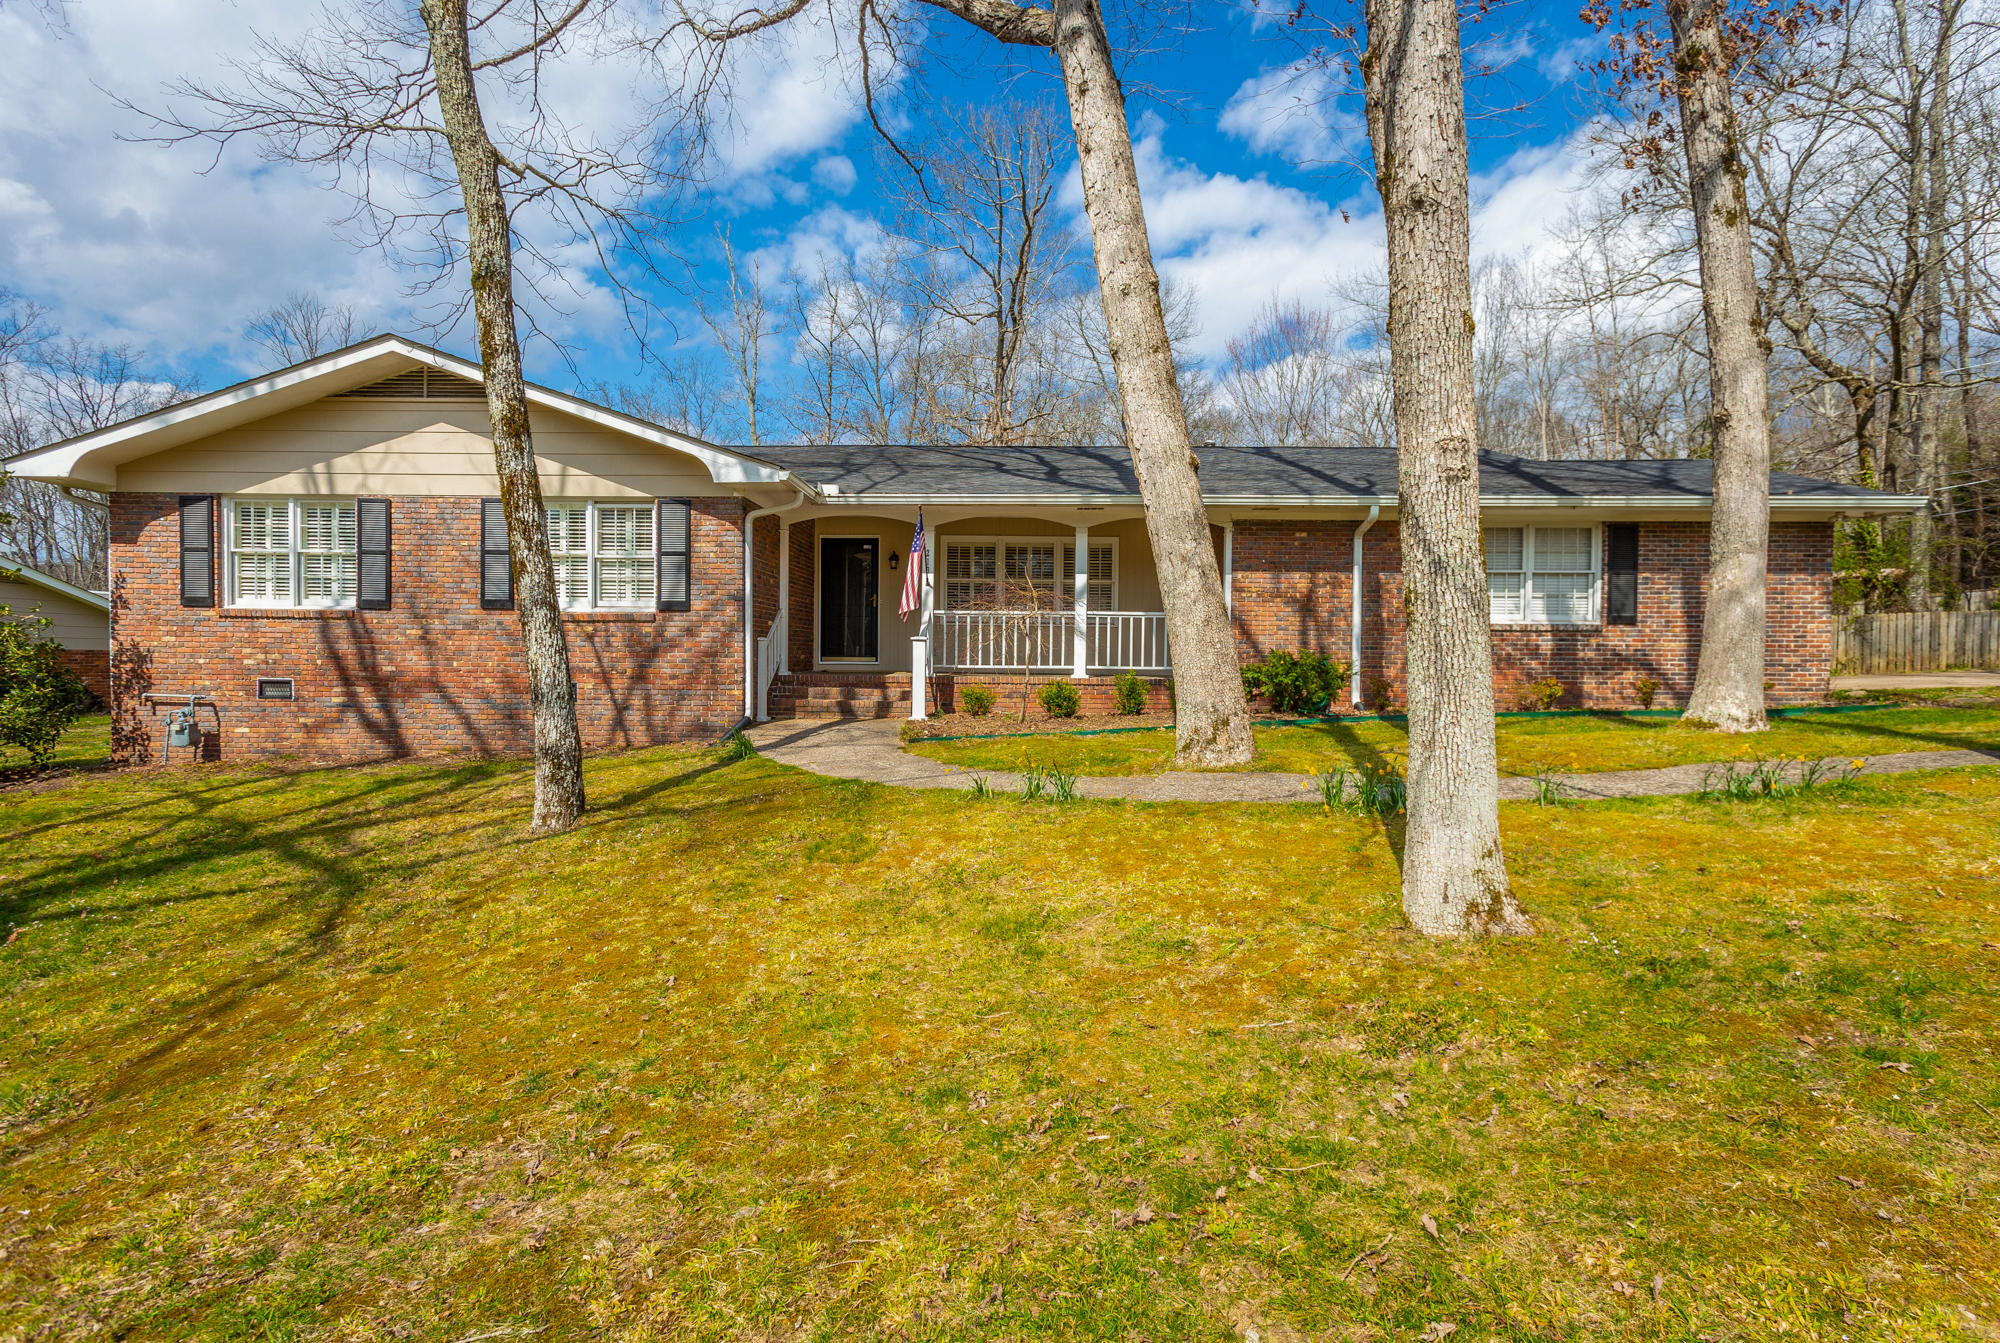 213 Inverness Dr, Signal Mountain, TN 37377